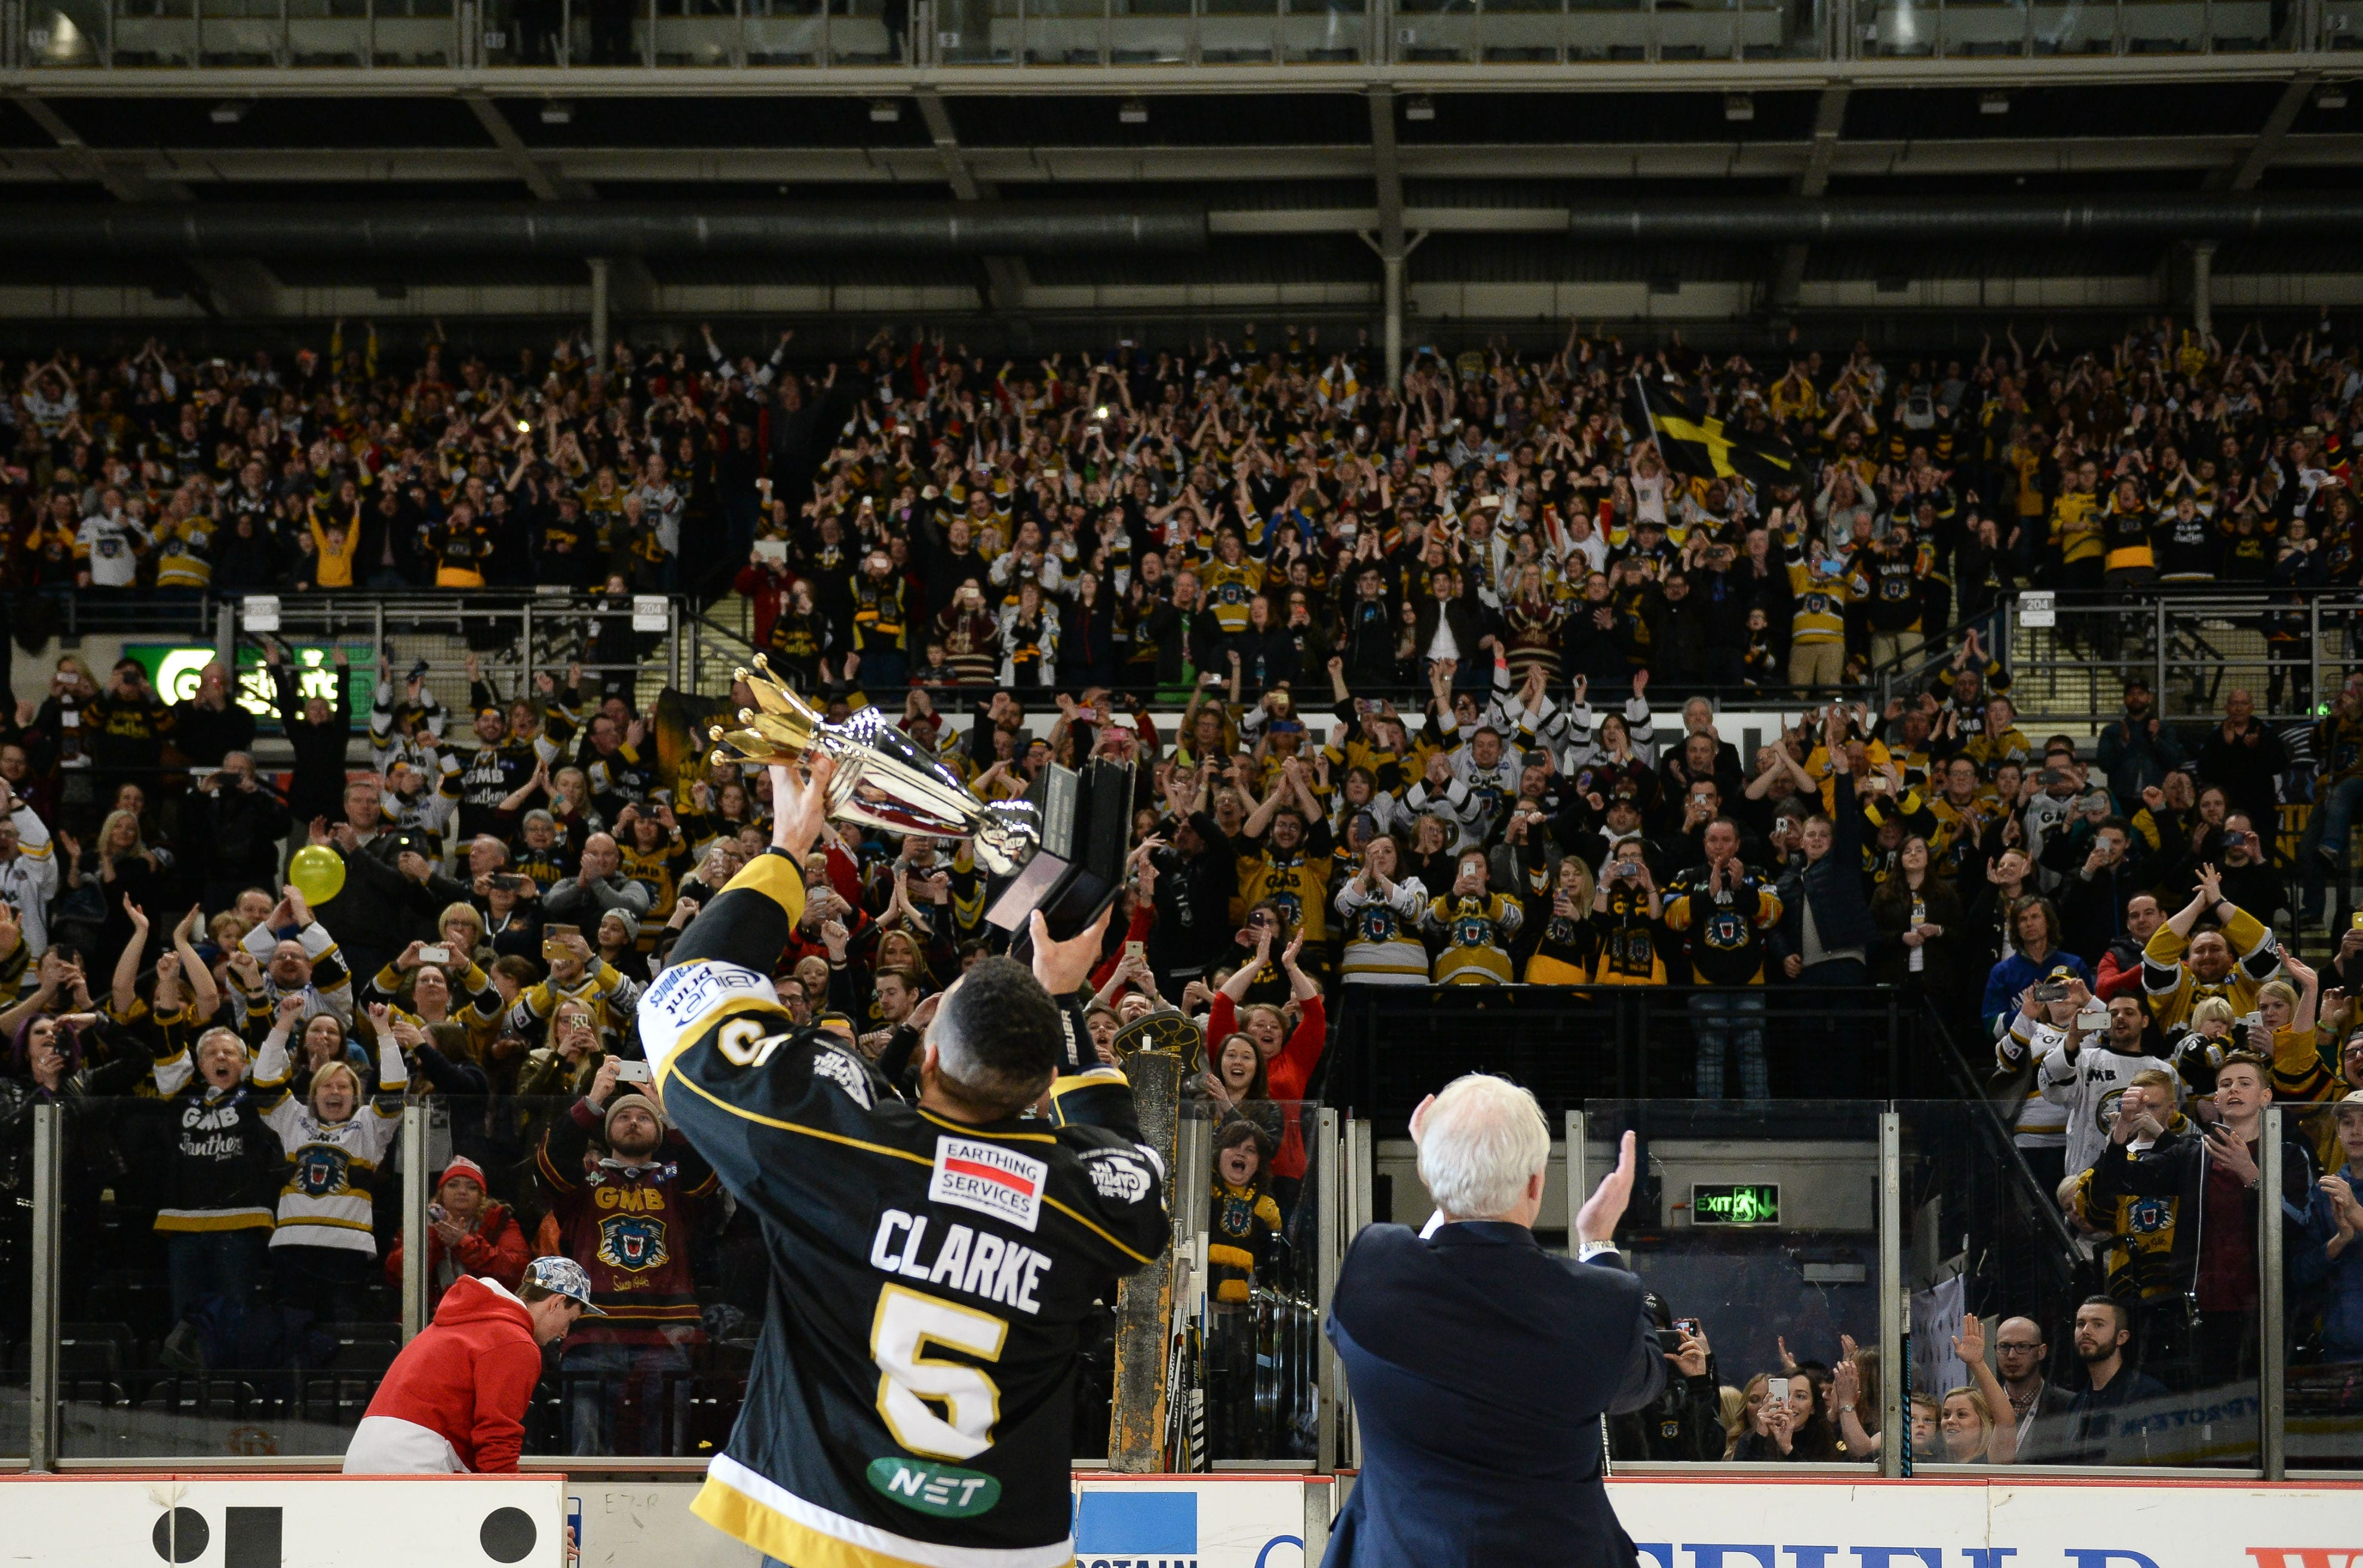 In 2016 Nottingham yet again proved they are in a class of their own when it comes to the Challenge Cup